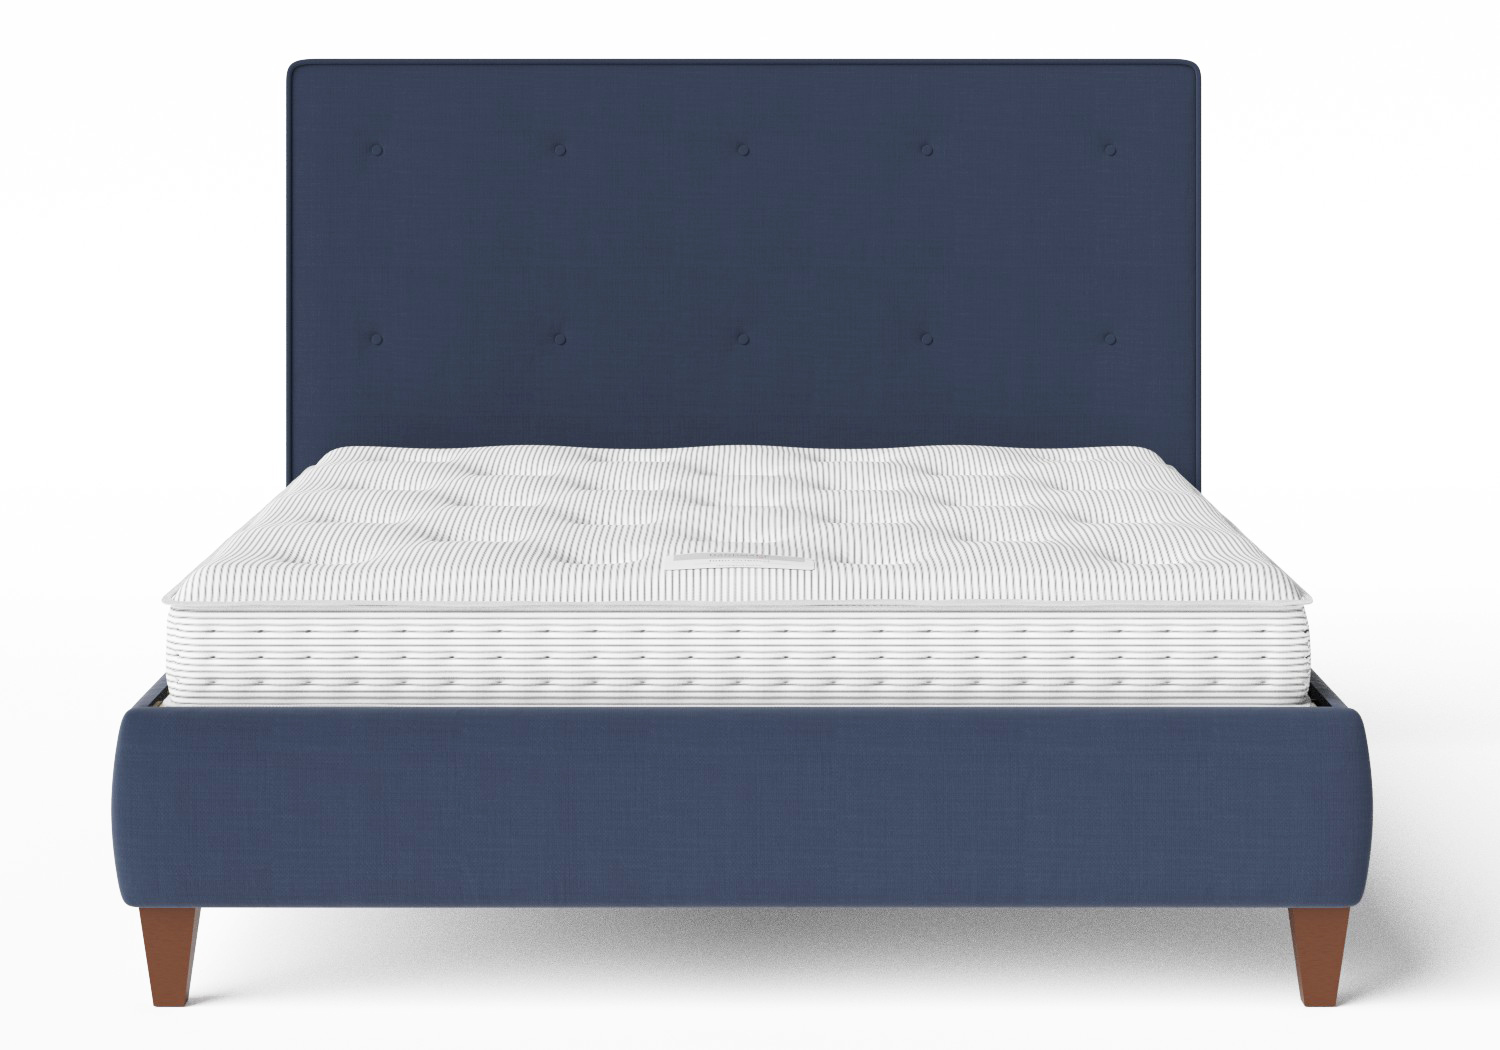 Yushan Upholstered Bed in Navy fabric with buttoning shown with Juno 1 mattress